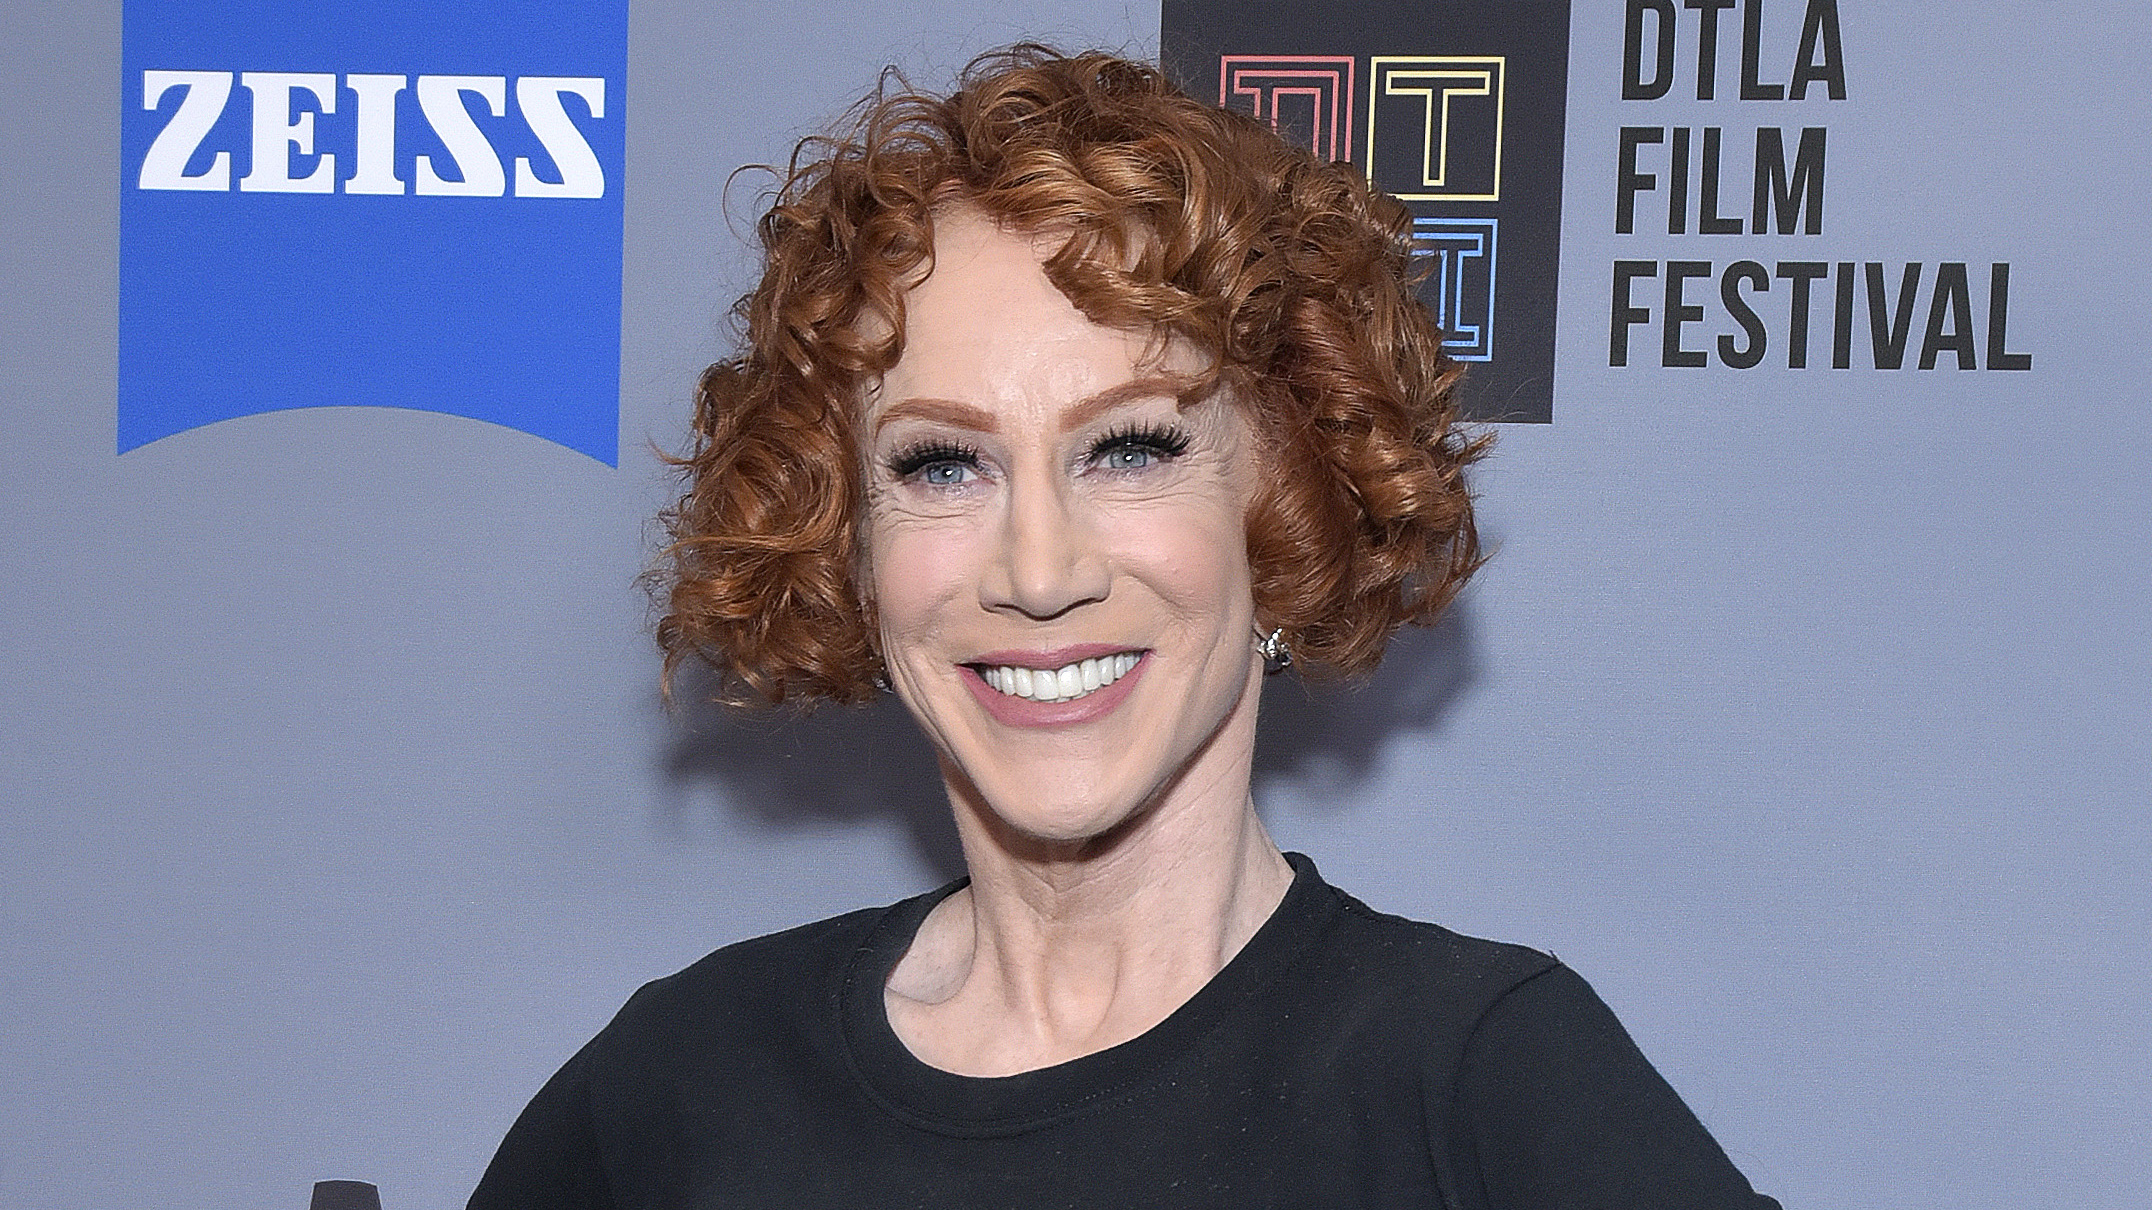 Westlake Legal Group Kathy-Griffin Kathy Griffin announces New Year's Eve engagement, plan for 'after midnight' wedding Nate Day fox-news/person/kathy-griffin fox-news/entertainment/events/marriage fox-news/entertainment/events/couples fox-news/entertainment/celebrity-news fox-news/entertainment fox news fnc/entertainment fnc article 3ea533f1-bdb3-5d70-b2ac-89a5e7167699